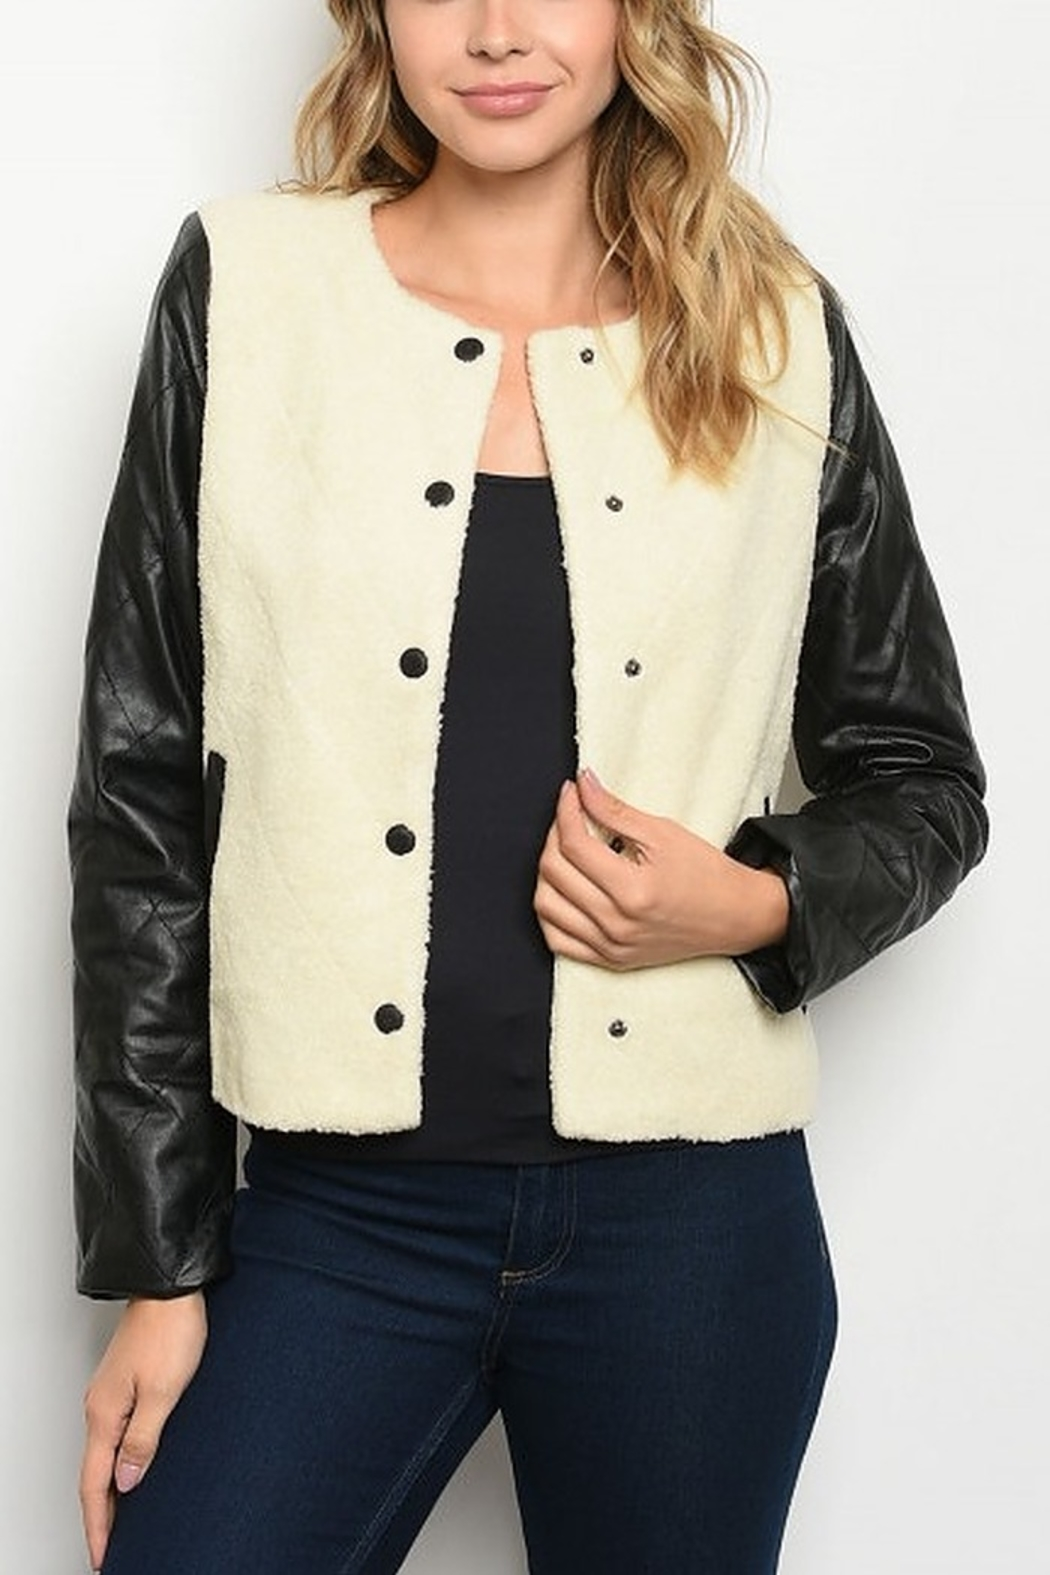 Lyn-Maree's  White and Black Faux Fur Vegan Leather Jacket - Main Image